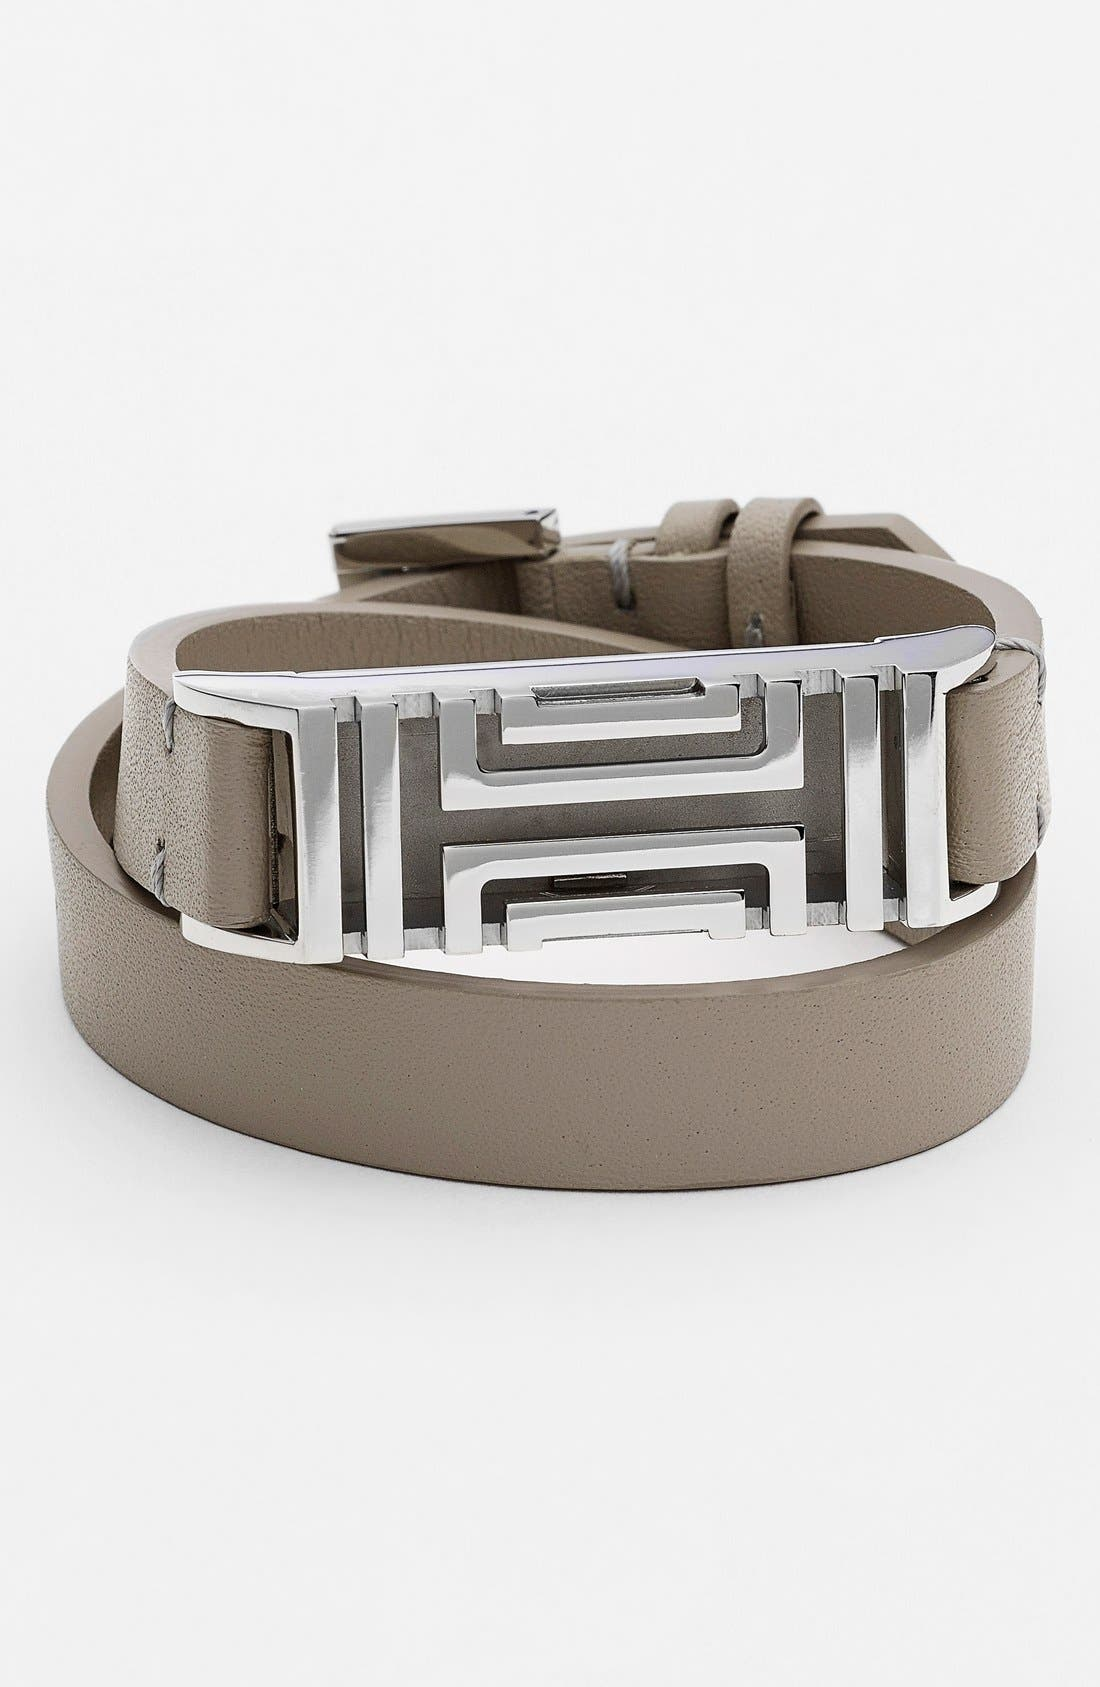 Tory Burch for Fitbit® Leather Wrap Bracelet